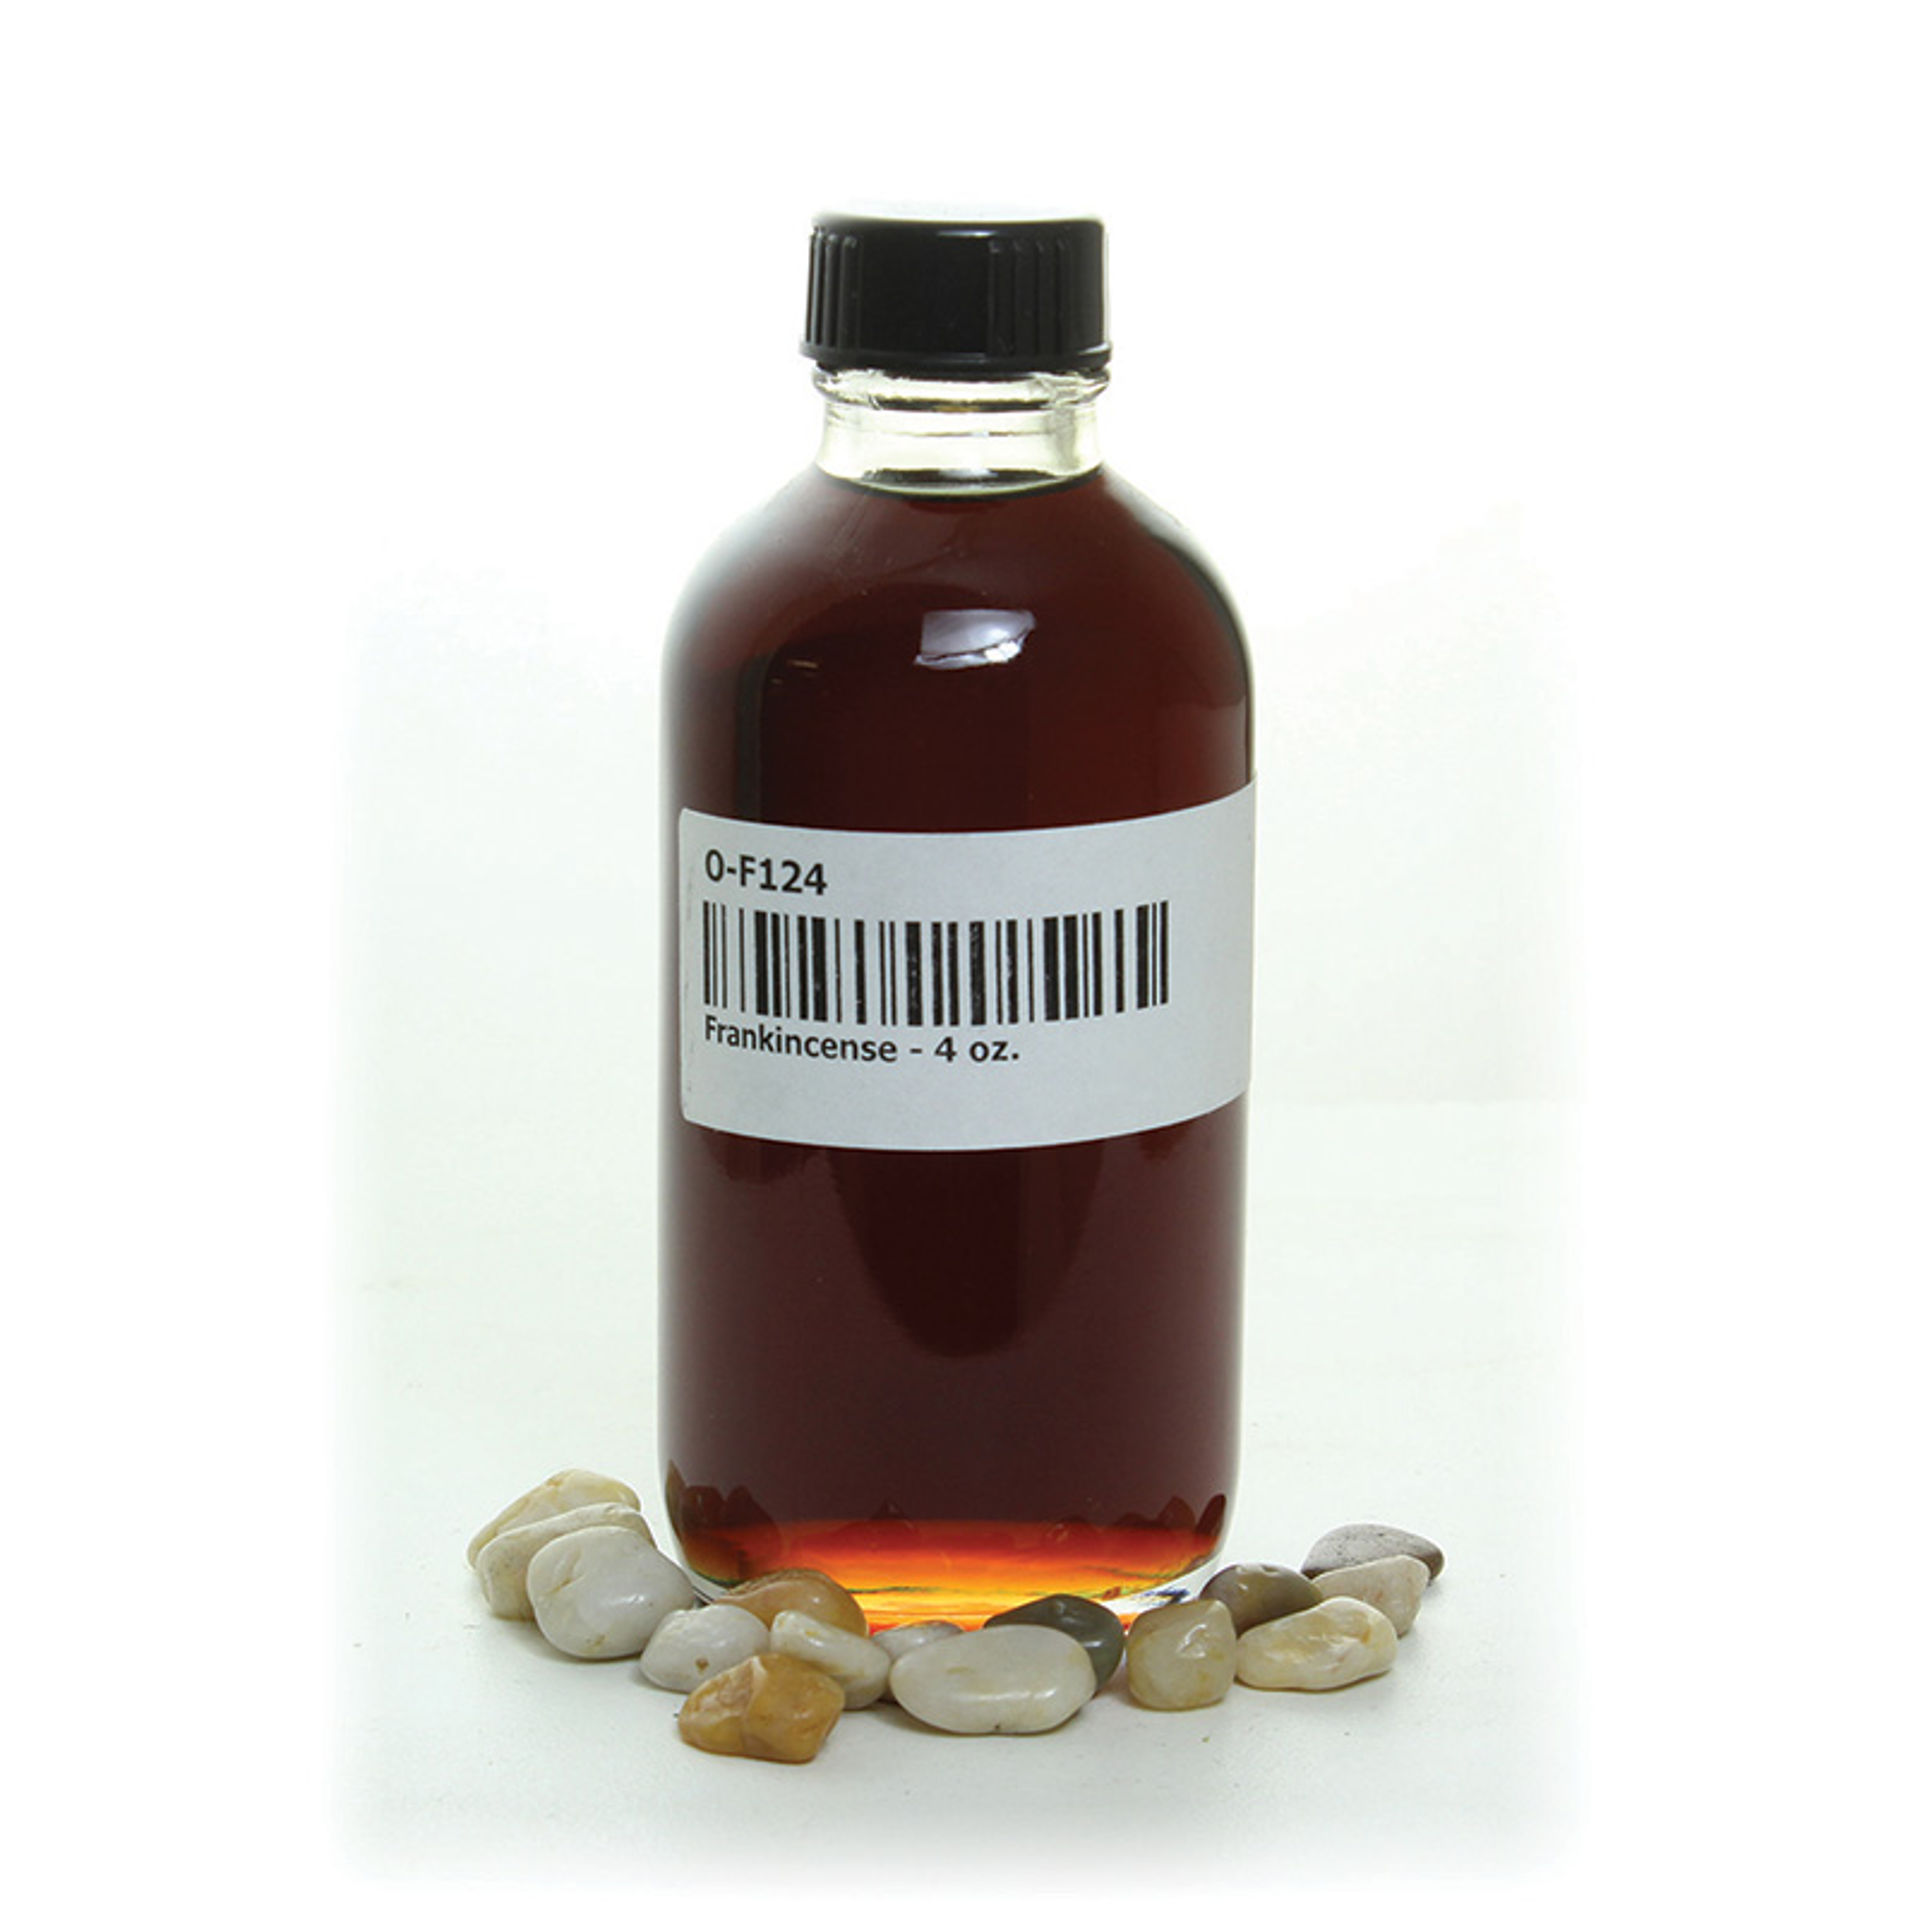 Picture of Frankincense - 4 oz.